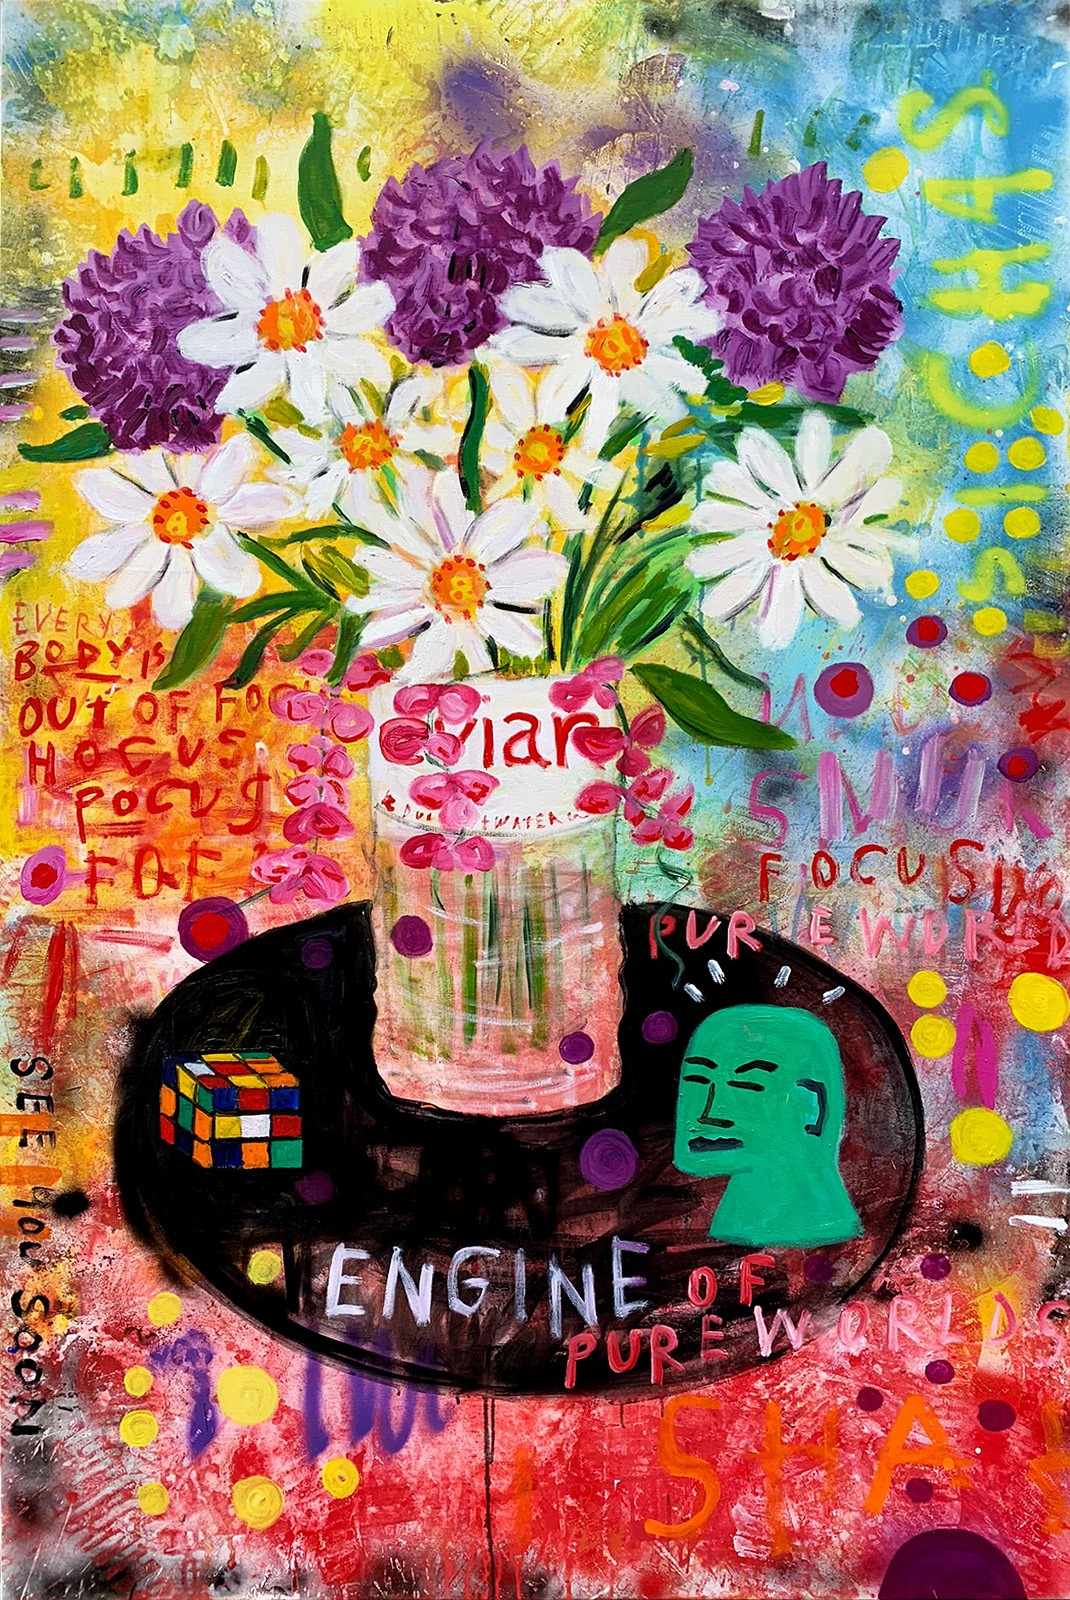 Troy Henriksen - The Engine Of A Pure World